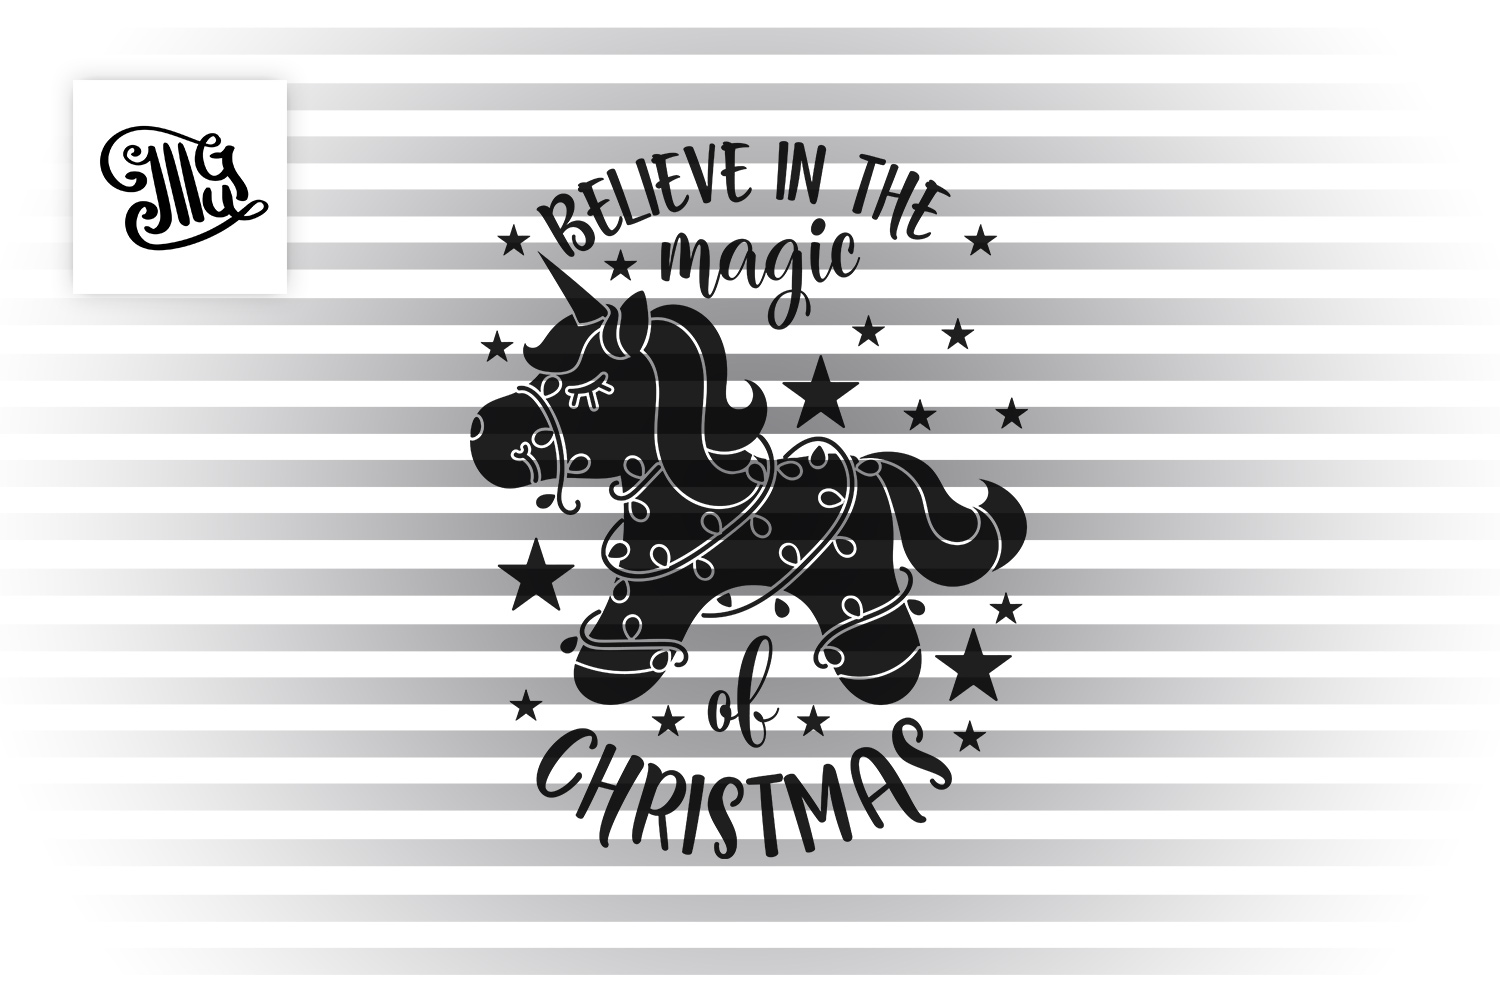 Believe in the magic of Christmas - unicorn example image 2